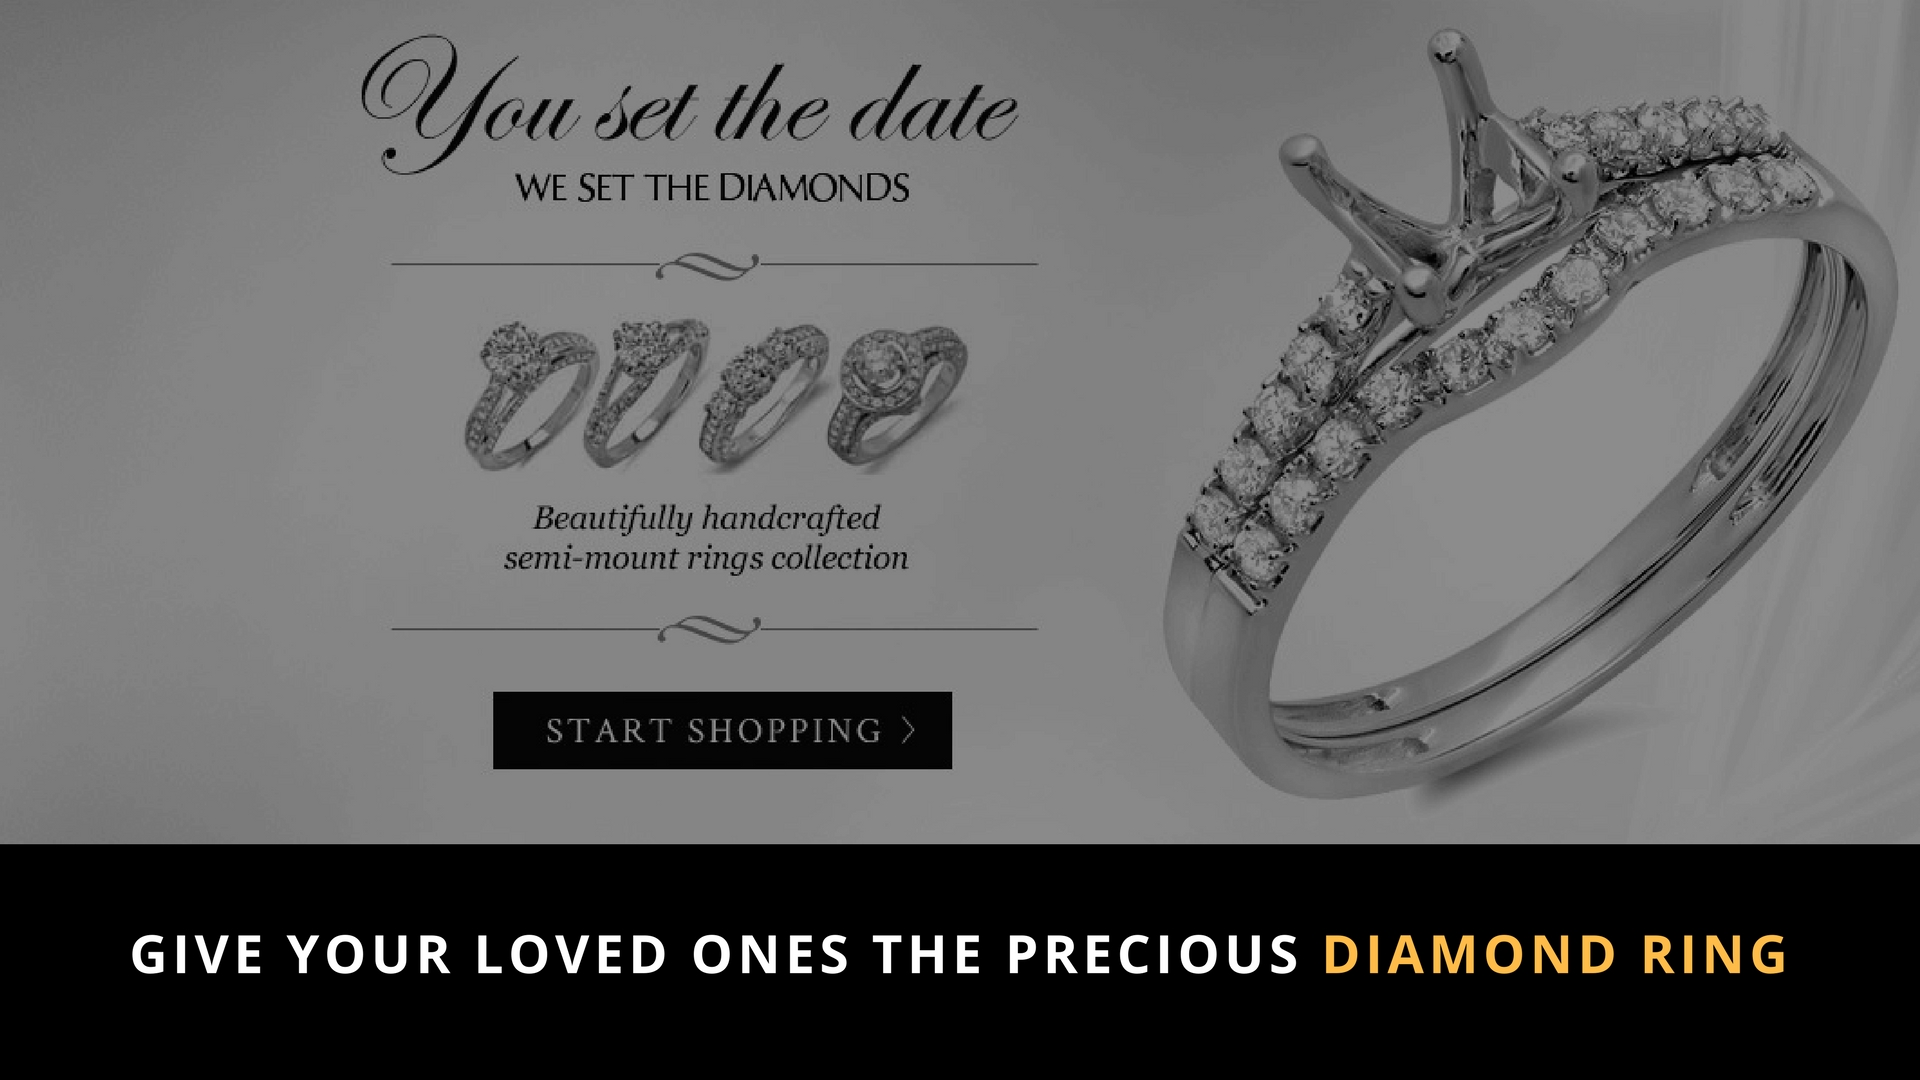 as investment an precious rival could surpass soon diamond option black diamonds metals